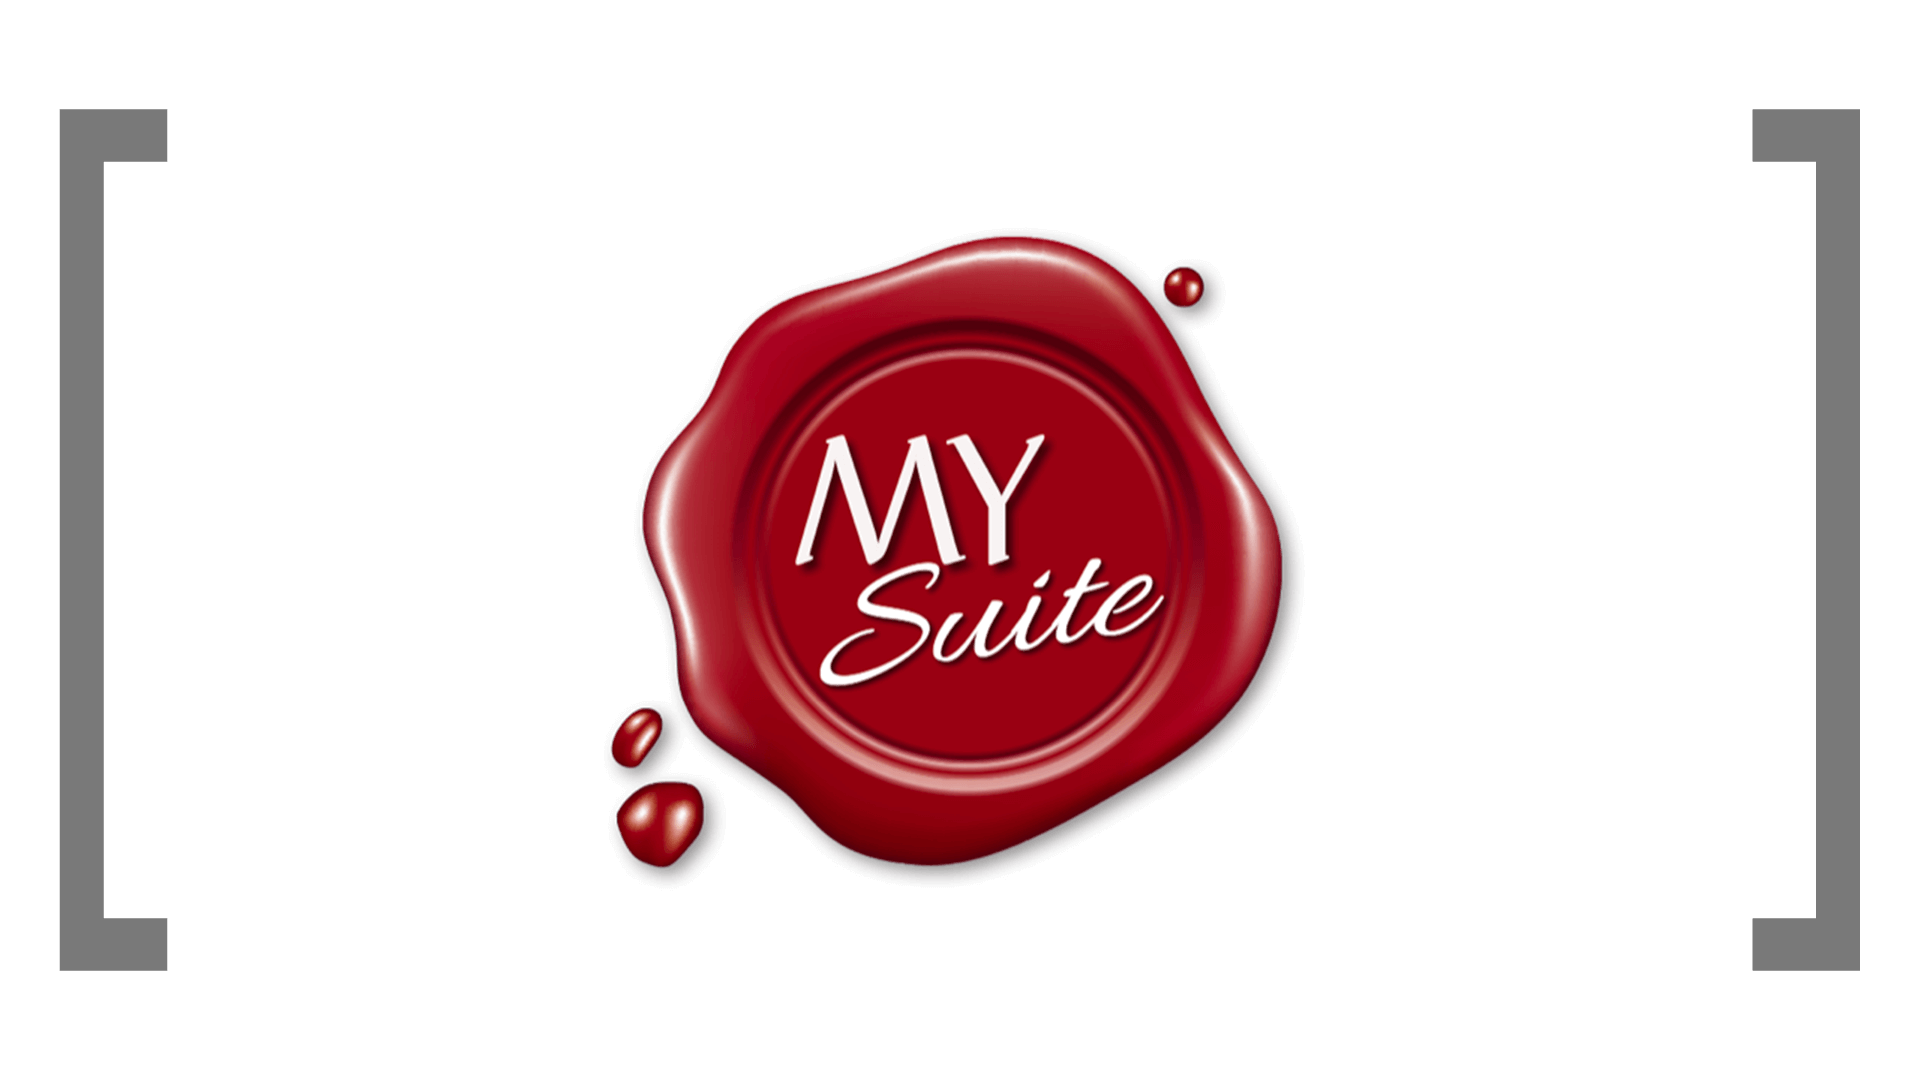 Logo My suite